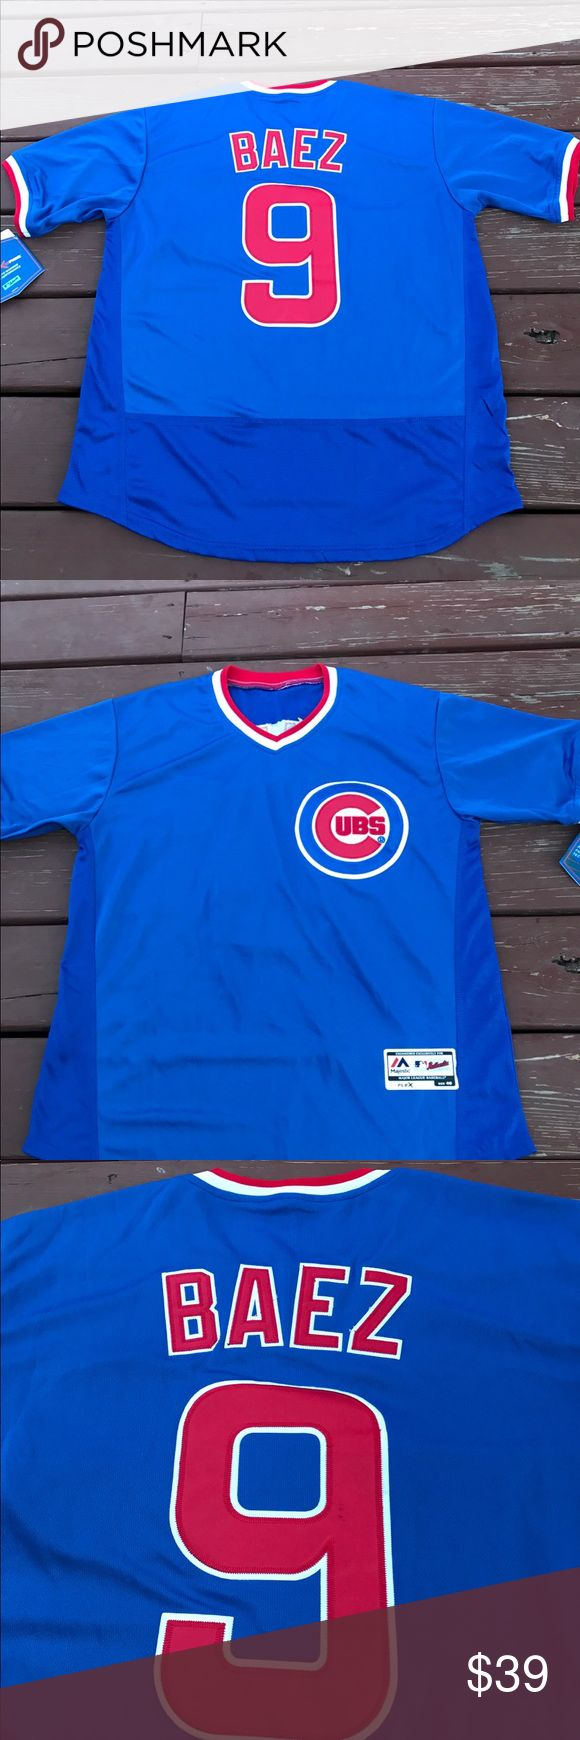 Men's Javier Baez Cubs 1984 Throwback Jersey (XL) Men's Chicago Cubs Javier Baez 1984 Majestic Athletic  Throwback Jersey. Brand new with tags, size XL(48) Flex base On Field jersey. I have a few more of these available in different sizes, please check my listings for more. I recently closed my retail store and am liquidating all my inventory. Over 300 jerseys available for Men, Women and kids. Need a Cubs W flag? How about Cubs World Series patches? Got em! If you don't see what your…